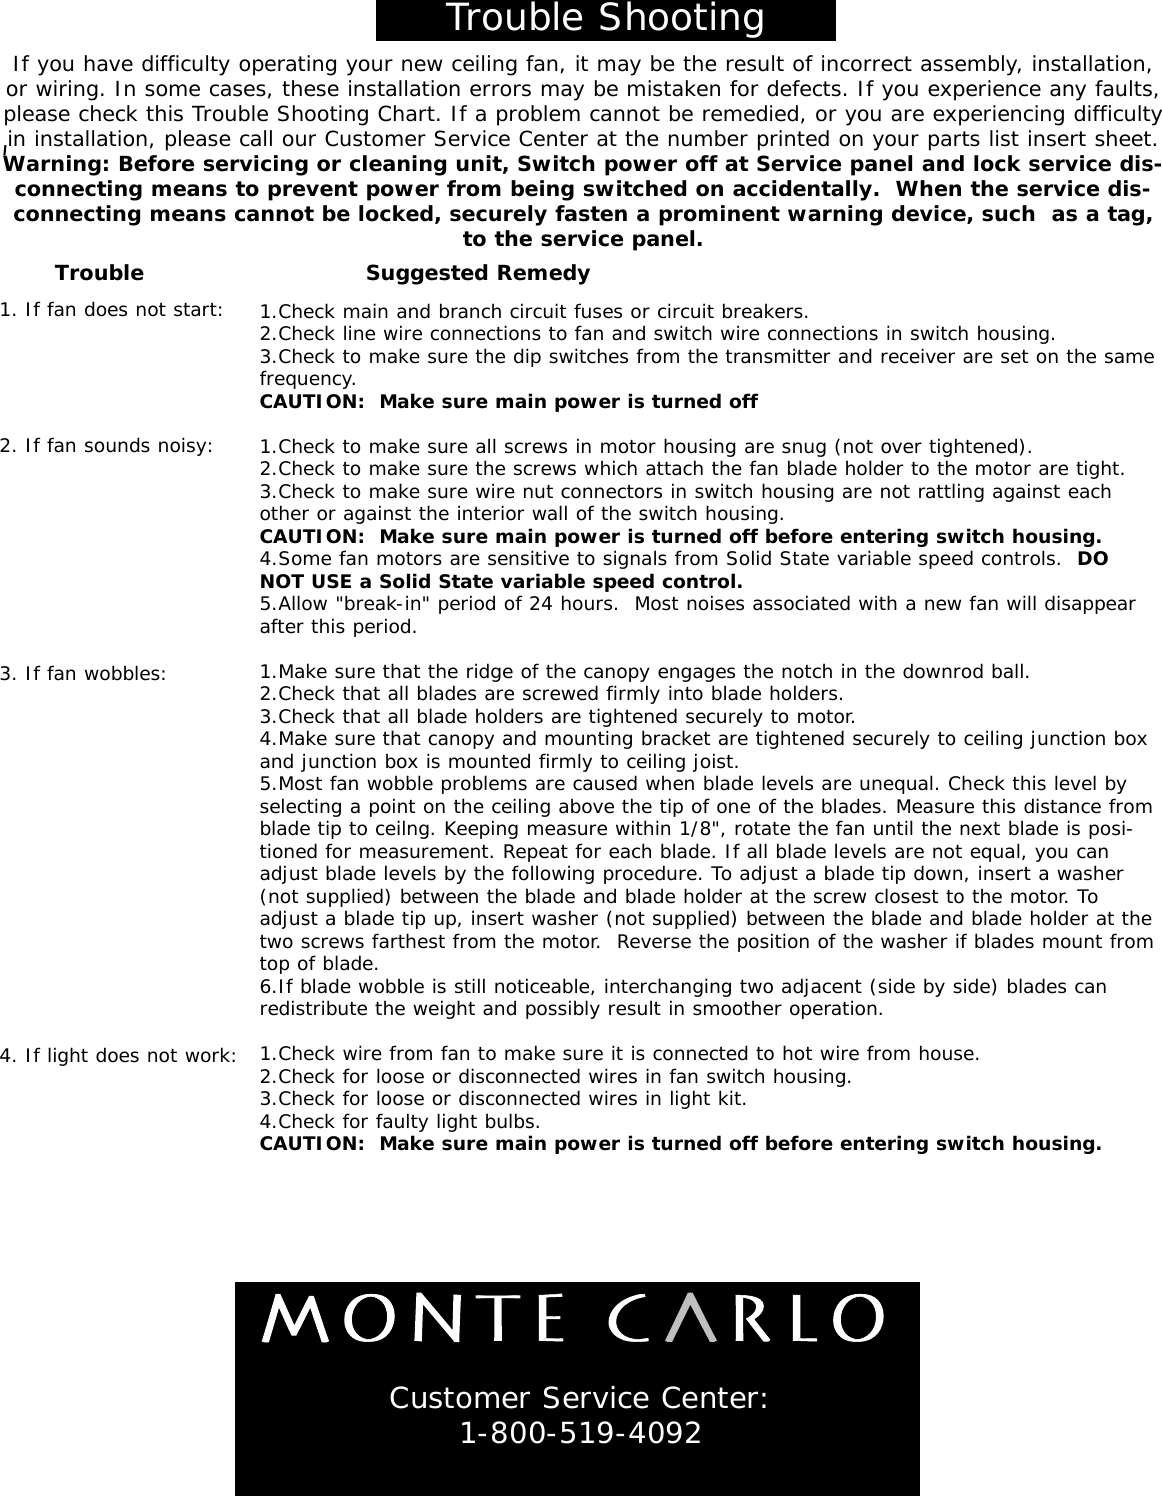 Monte Carlo Fan Company 5clr66xxd Series Users Manual How Does A Circuit Breaker Work1 Page 7 Of 8